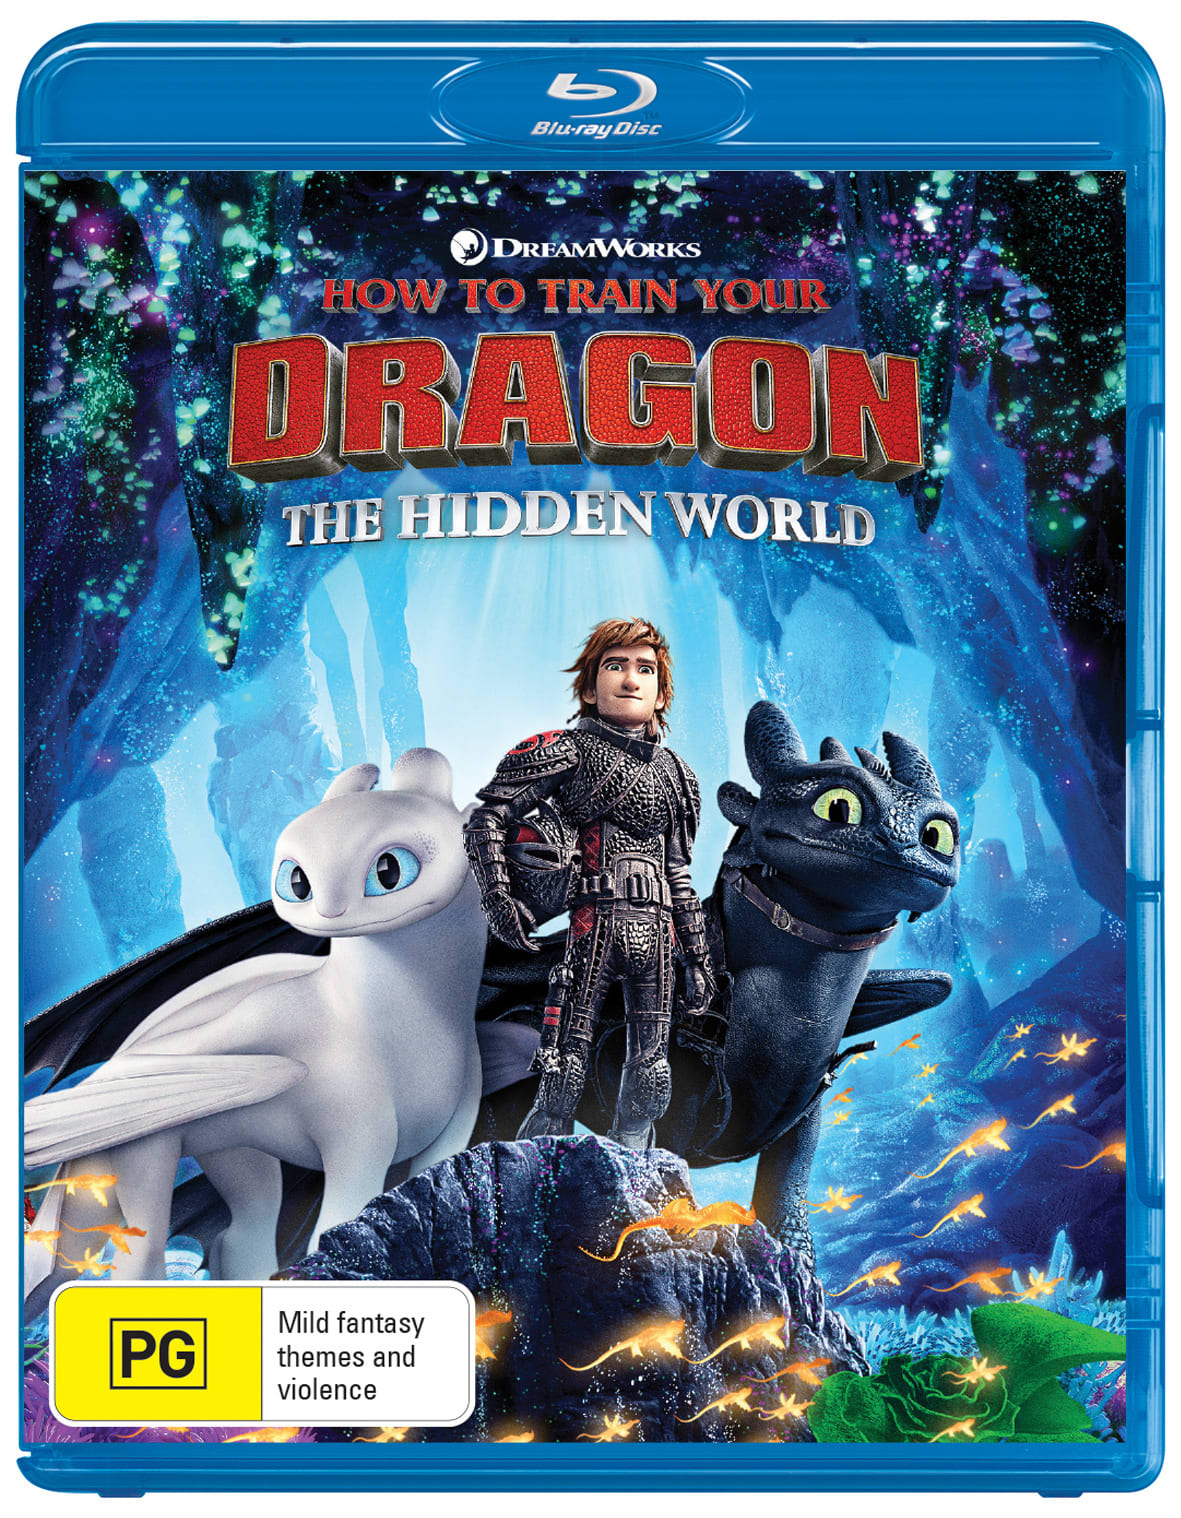 How to Train Your Dragon - The Hidden World [Blu-ray] [Blu-ray]